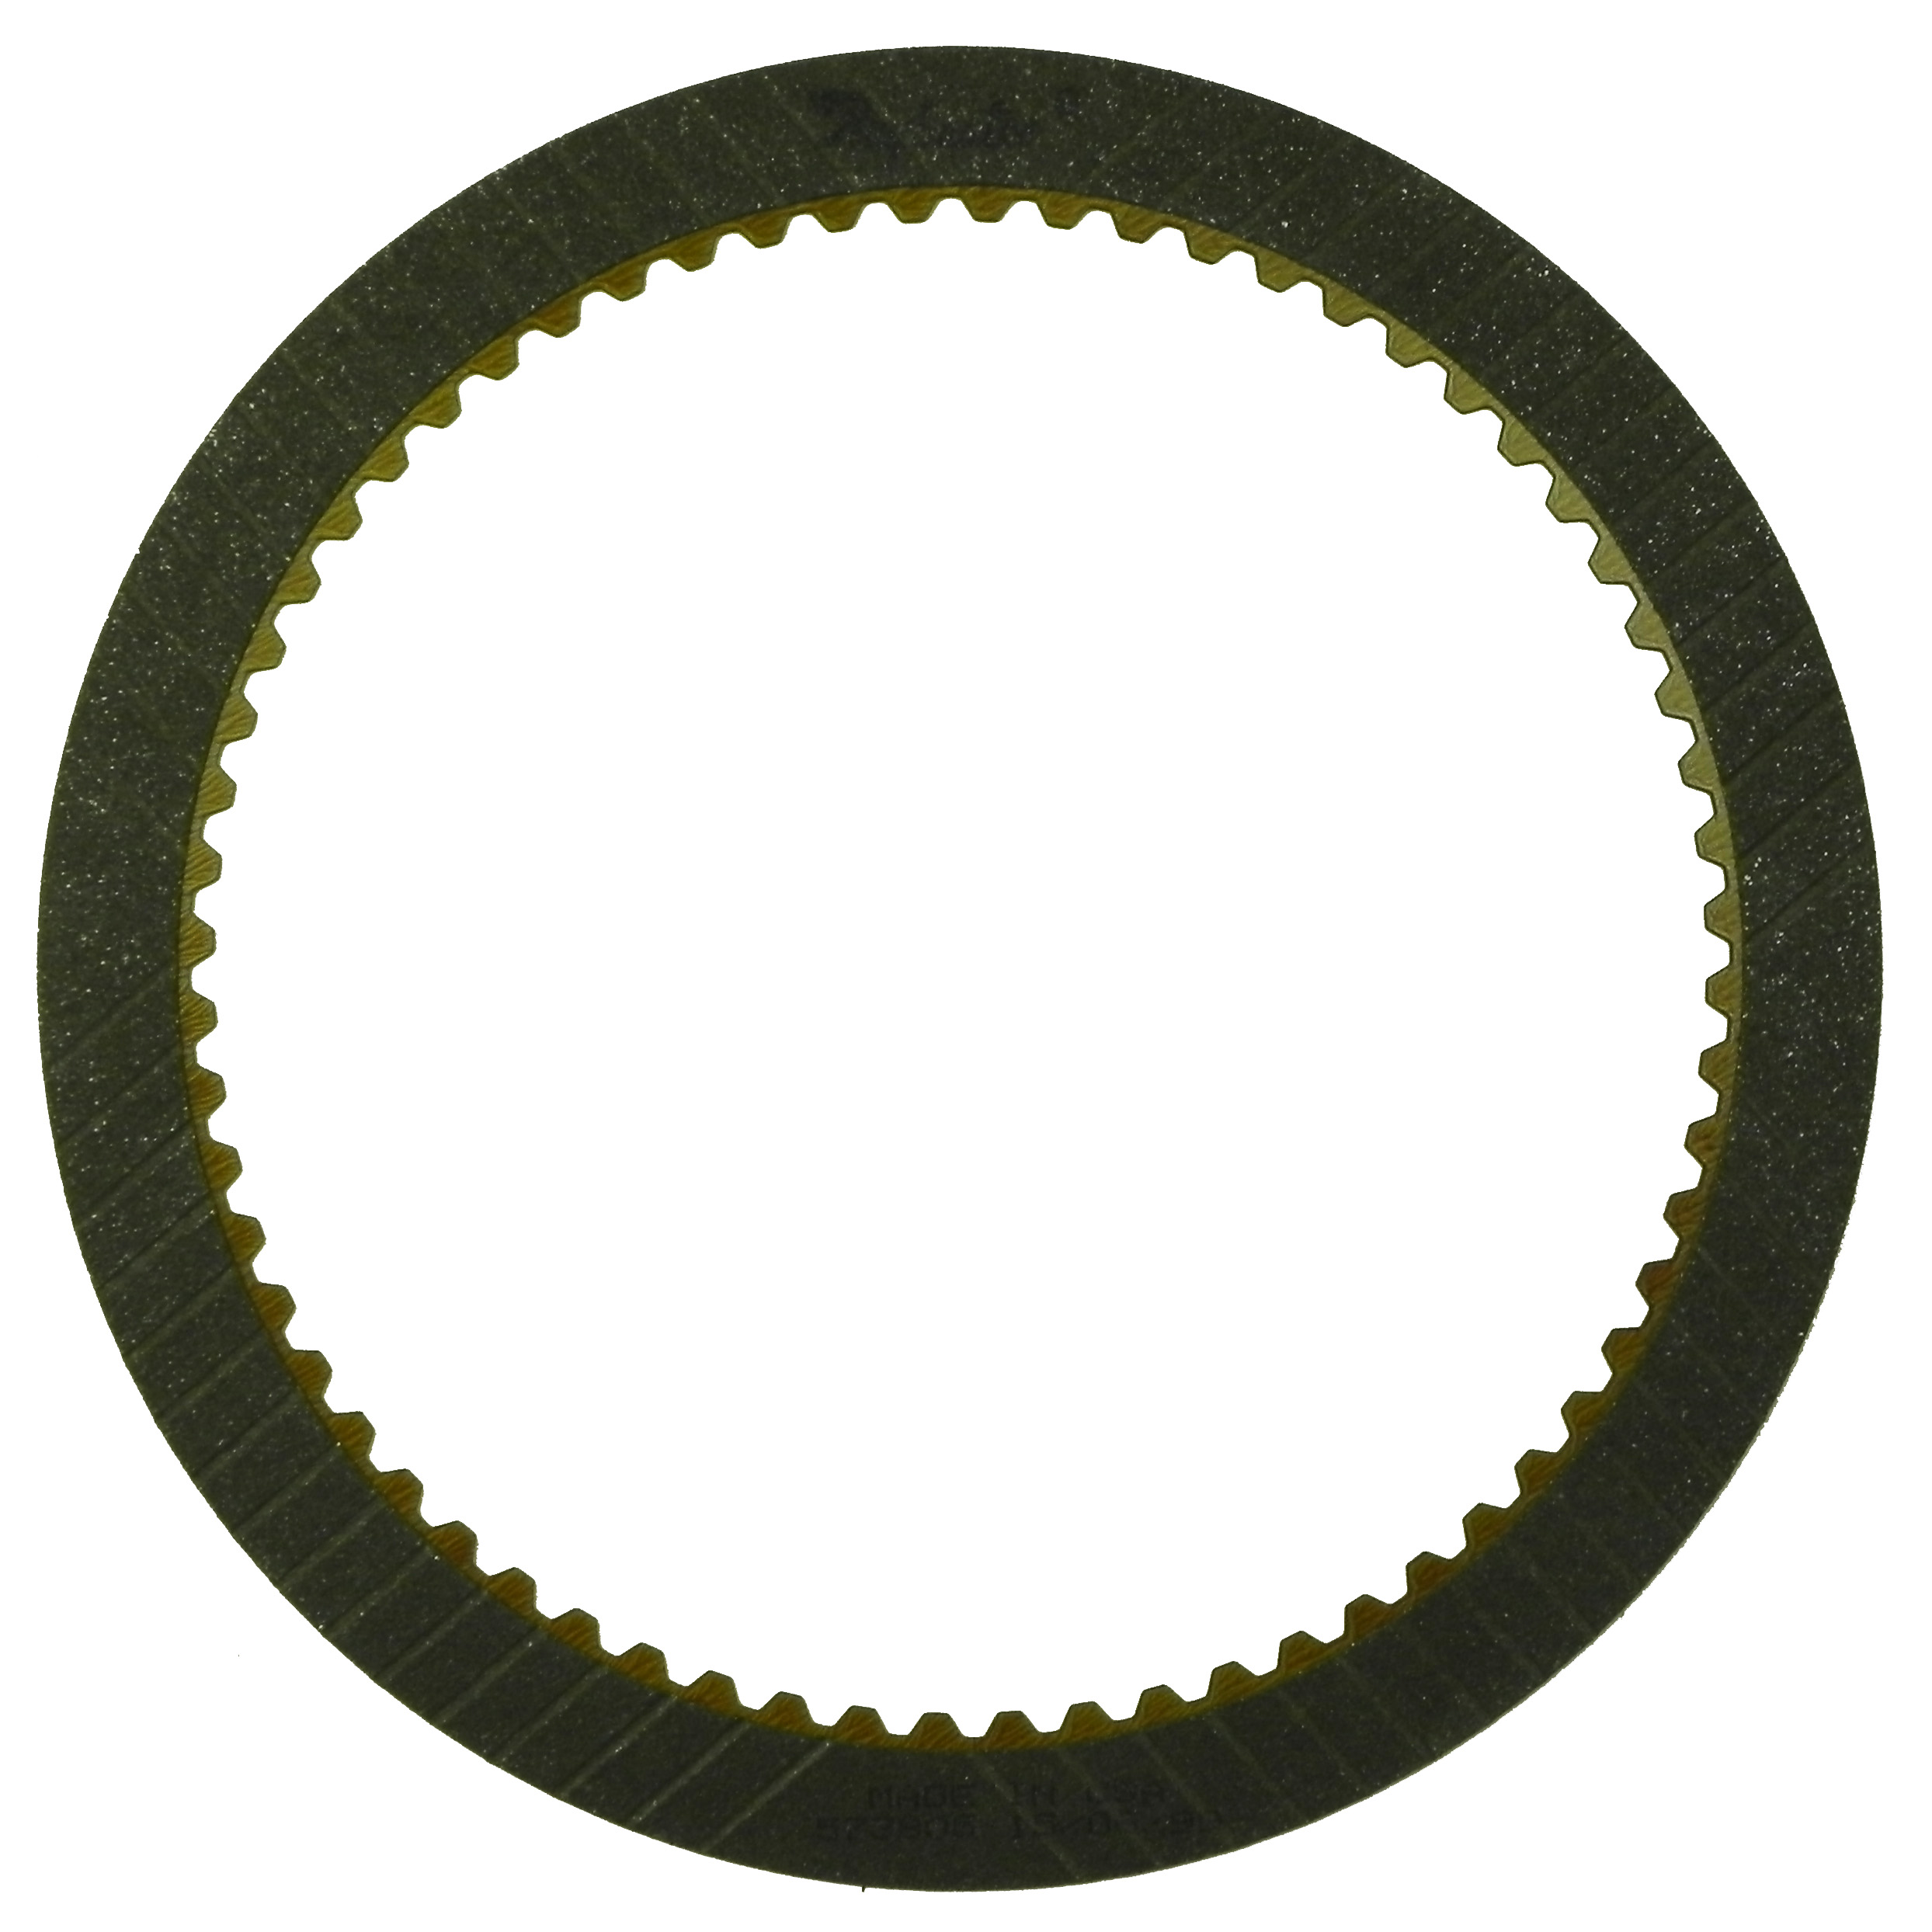 R573805 | 1988-2002 Friction Clutch Plate Graphitic High Graphitic (Infiniti, Twin Turbo)